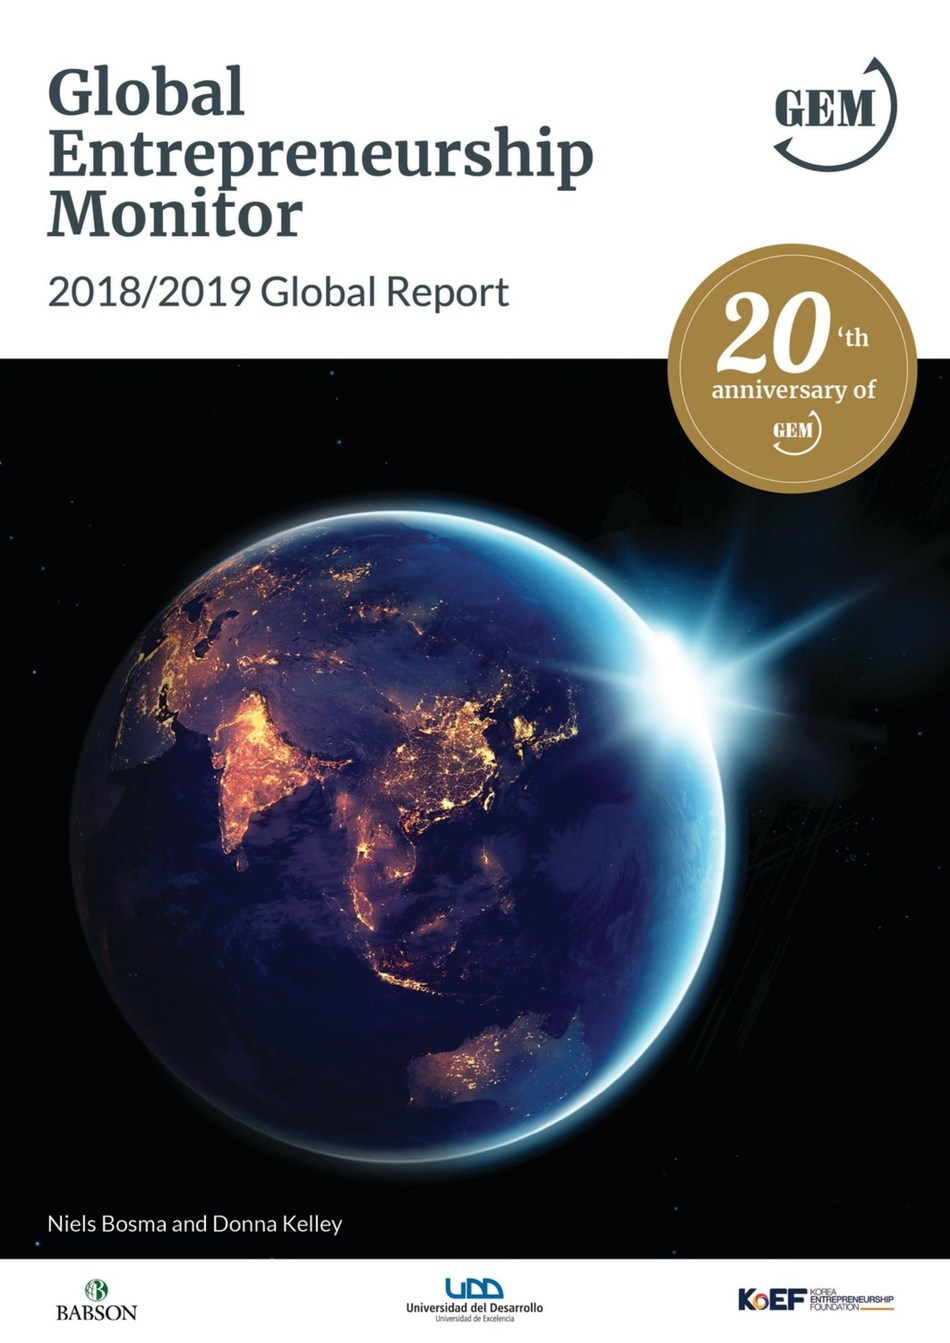 The Global Entrepreneurship Monitor Global Report shows that the global economy nourishes entrepreneurs of all kinds.